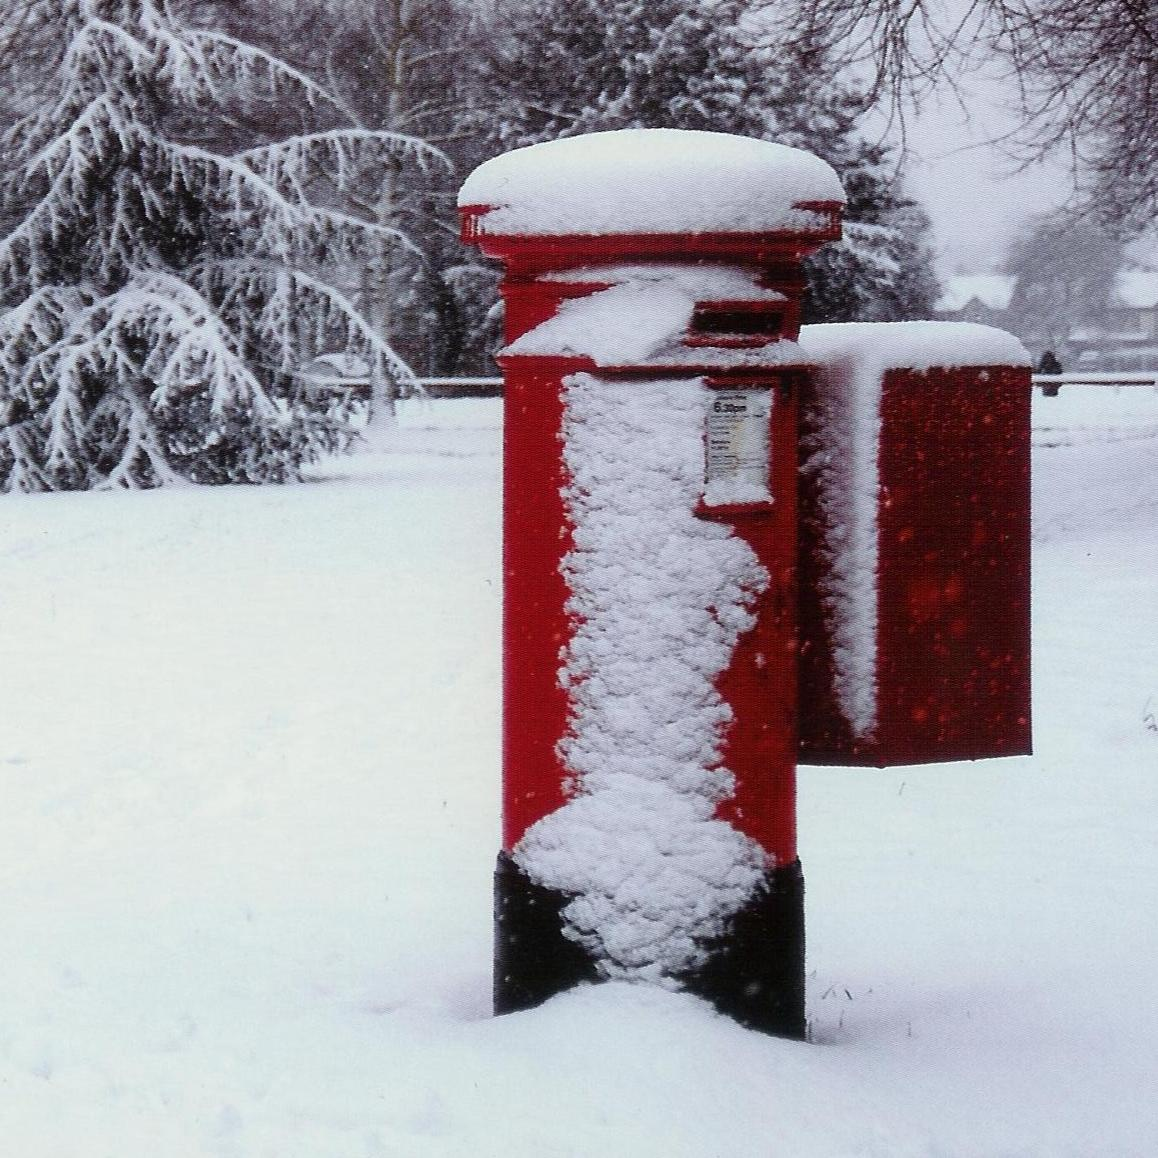 A snowy scene with a red postbox.